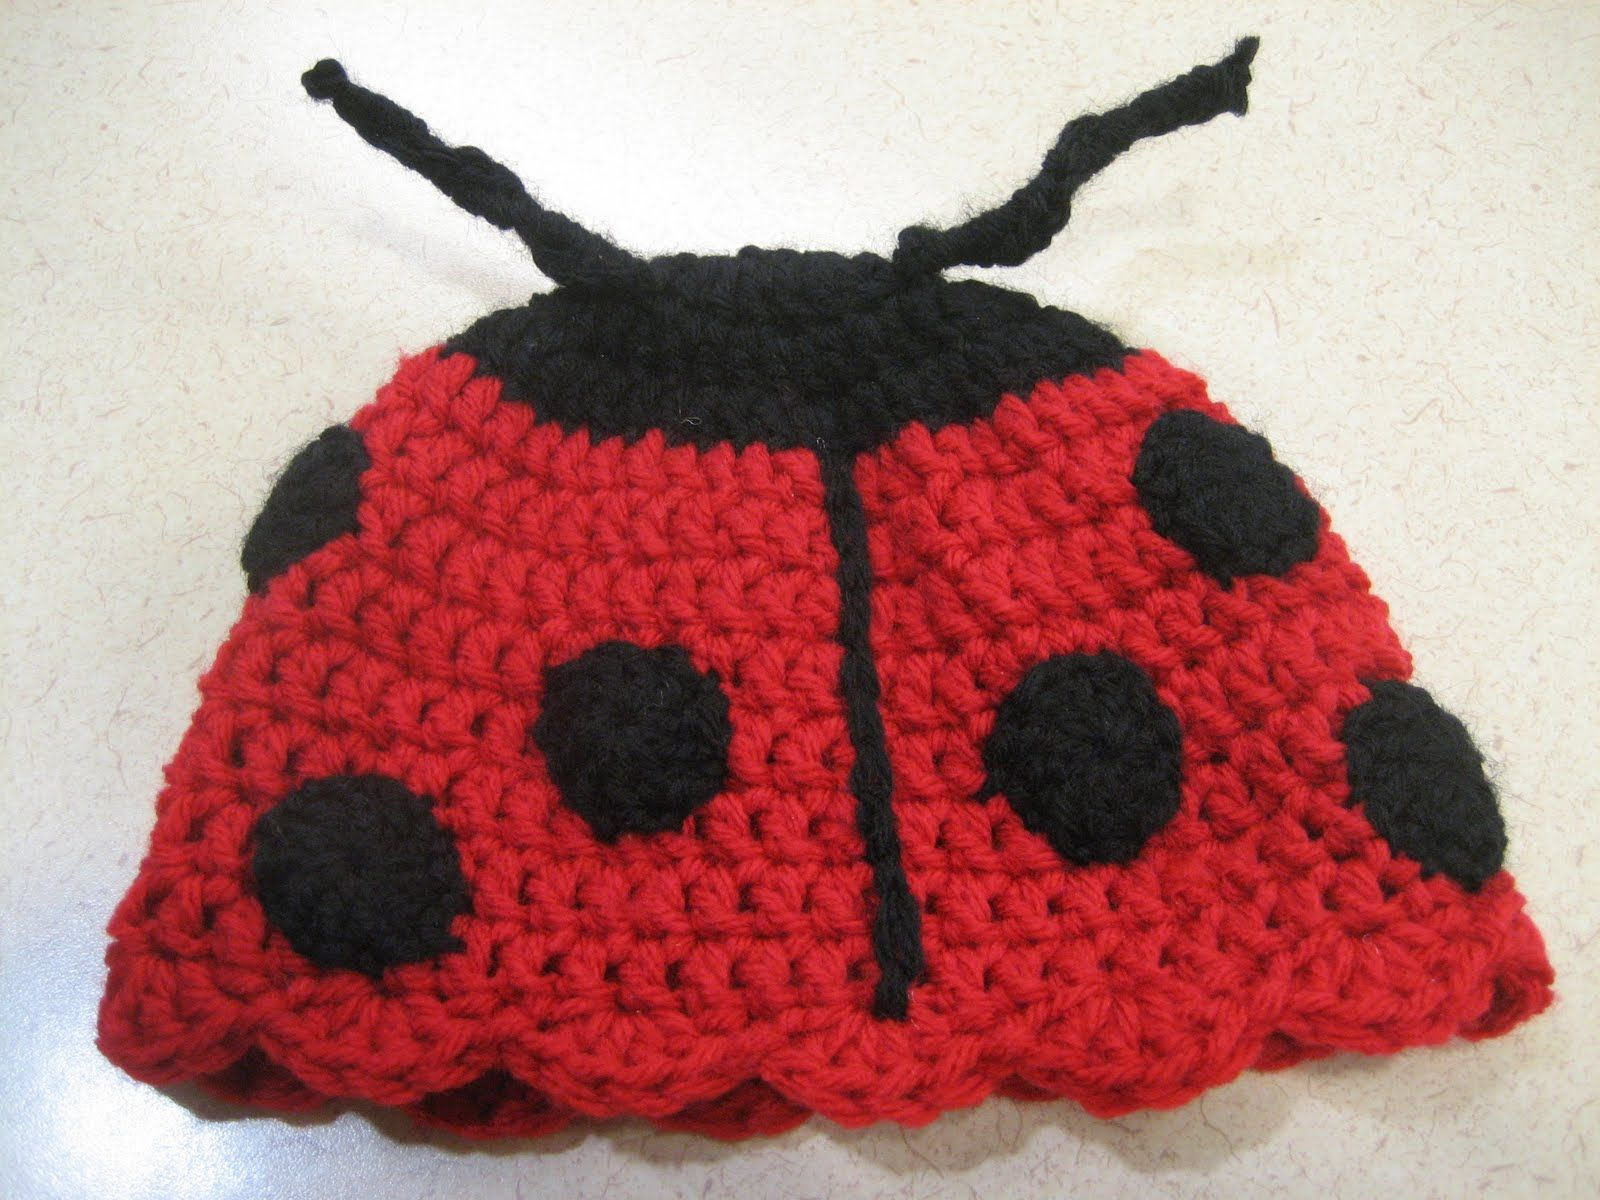 Crochet ladybug toy pattern crochet every day places to visit crochet ladybug toy pattern crochet every day bankloansurffo Choice Image